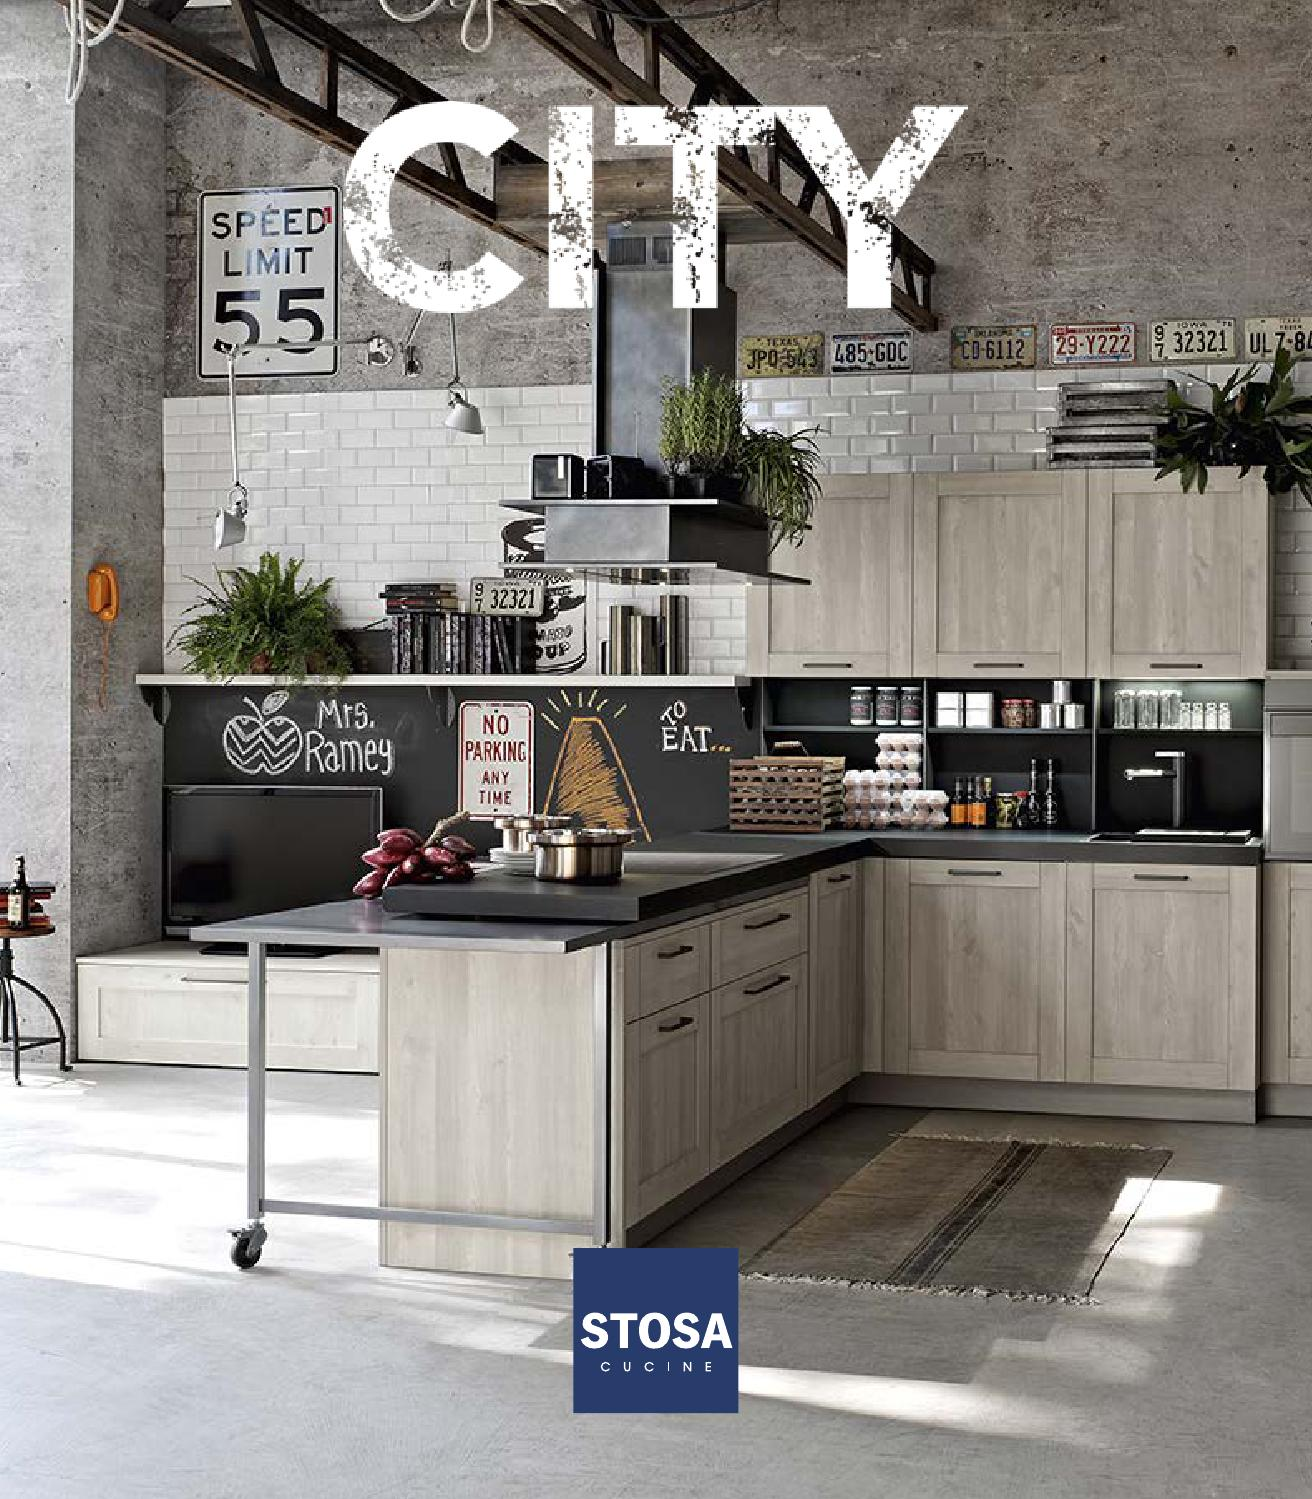 Catalogo cucine moderne stosa city by stosa cucine issuu for Cucine stosa catalogo